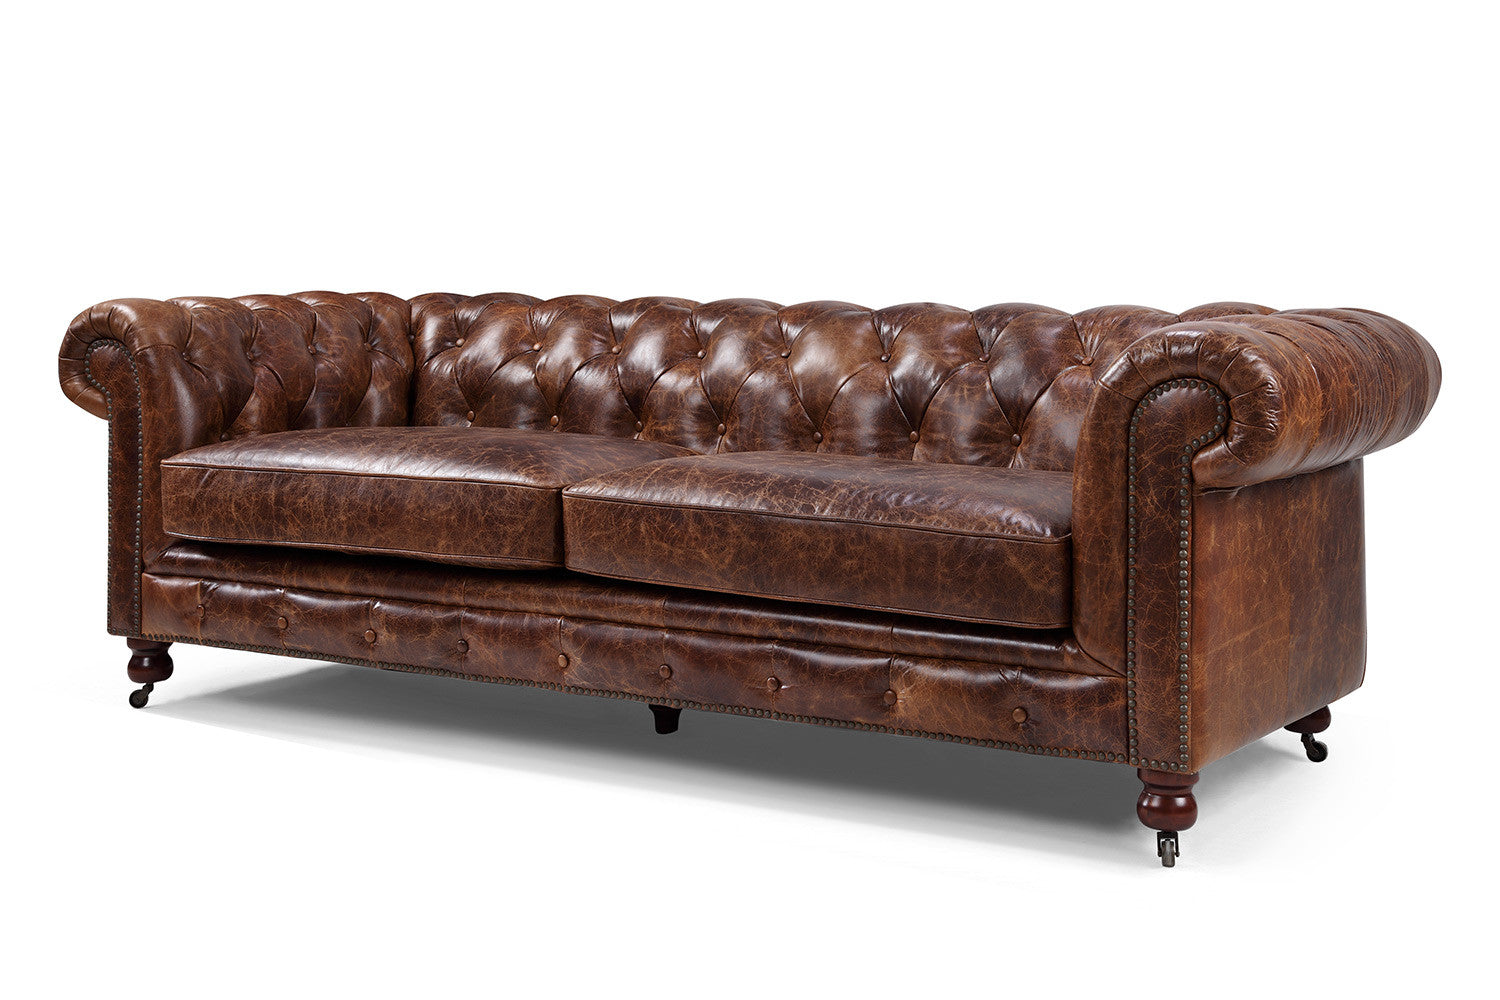 Canap chesterfield en cuir kensington rose moore - Canape chesterfield rouge cuir ...